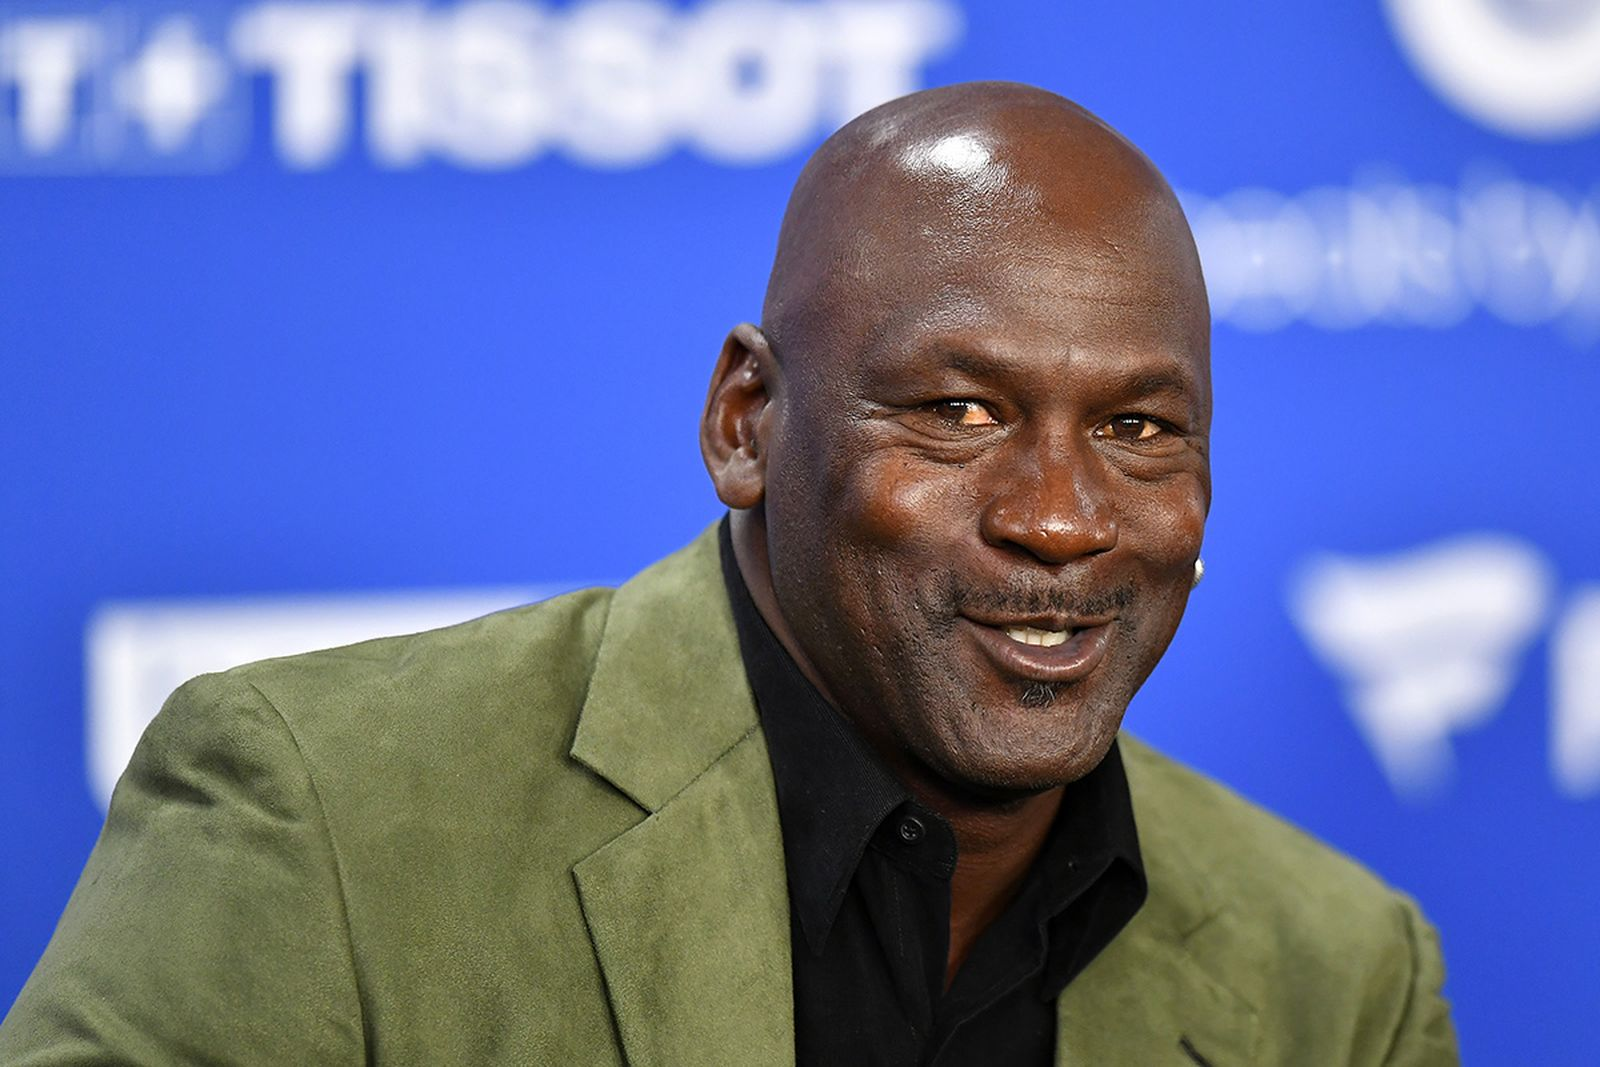 Michael Jordan attends a press conference before the NBA Paris Game match